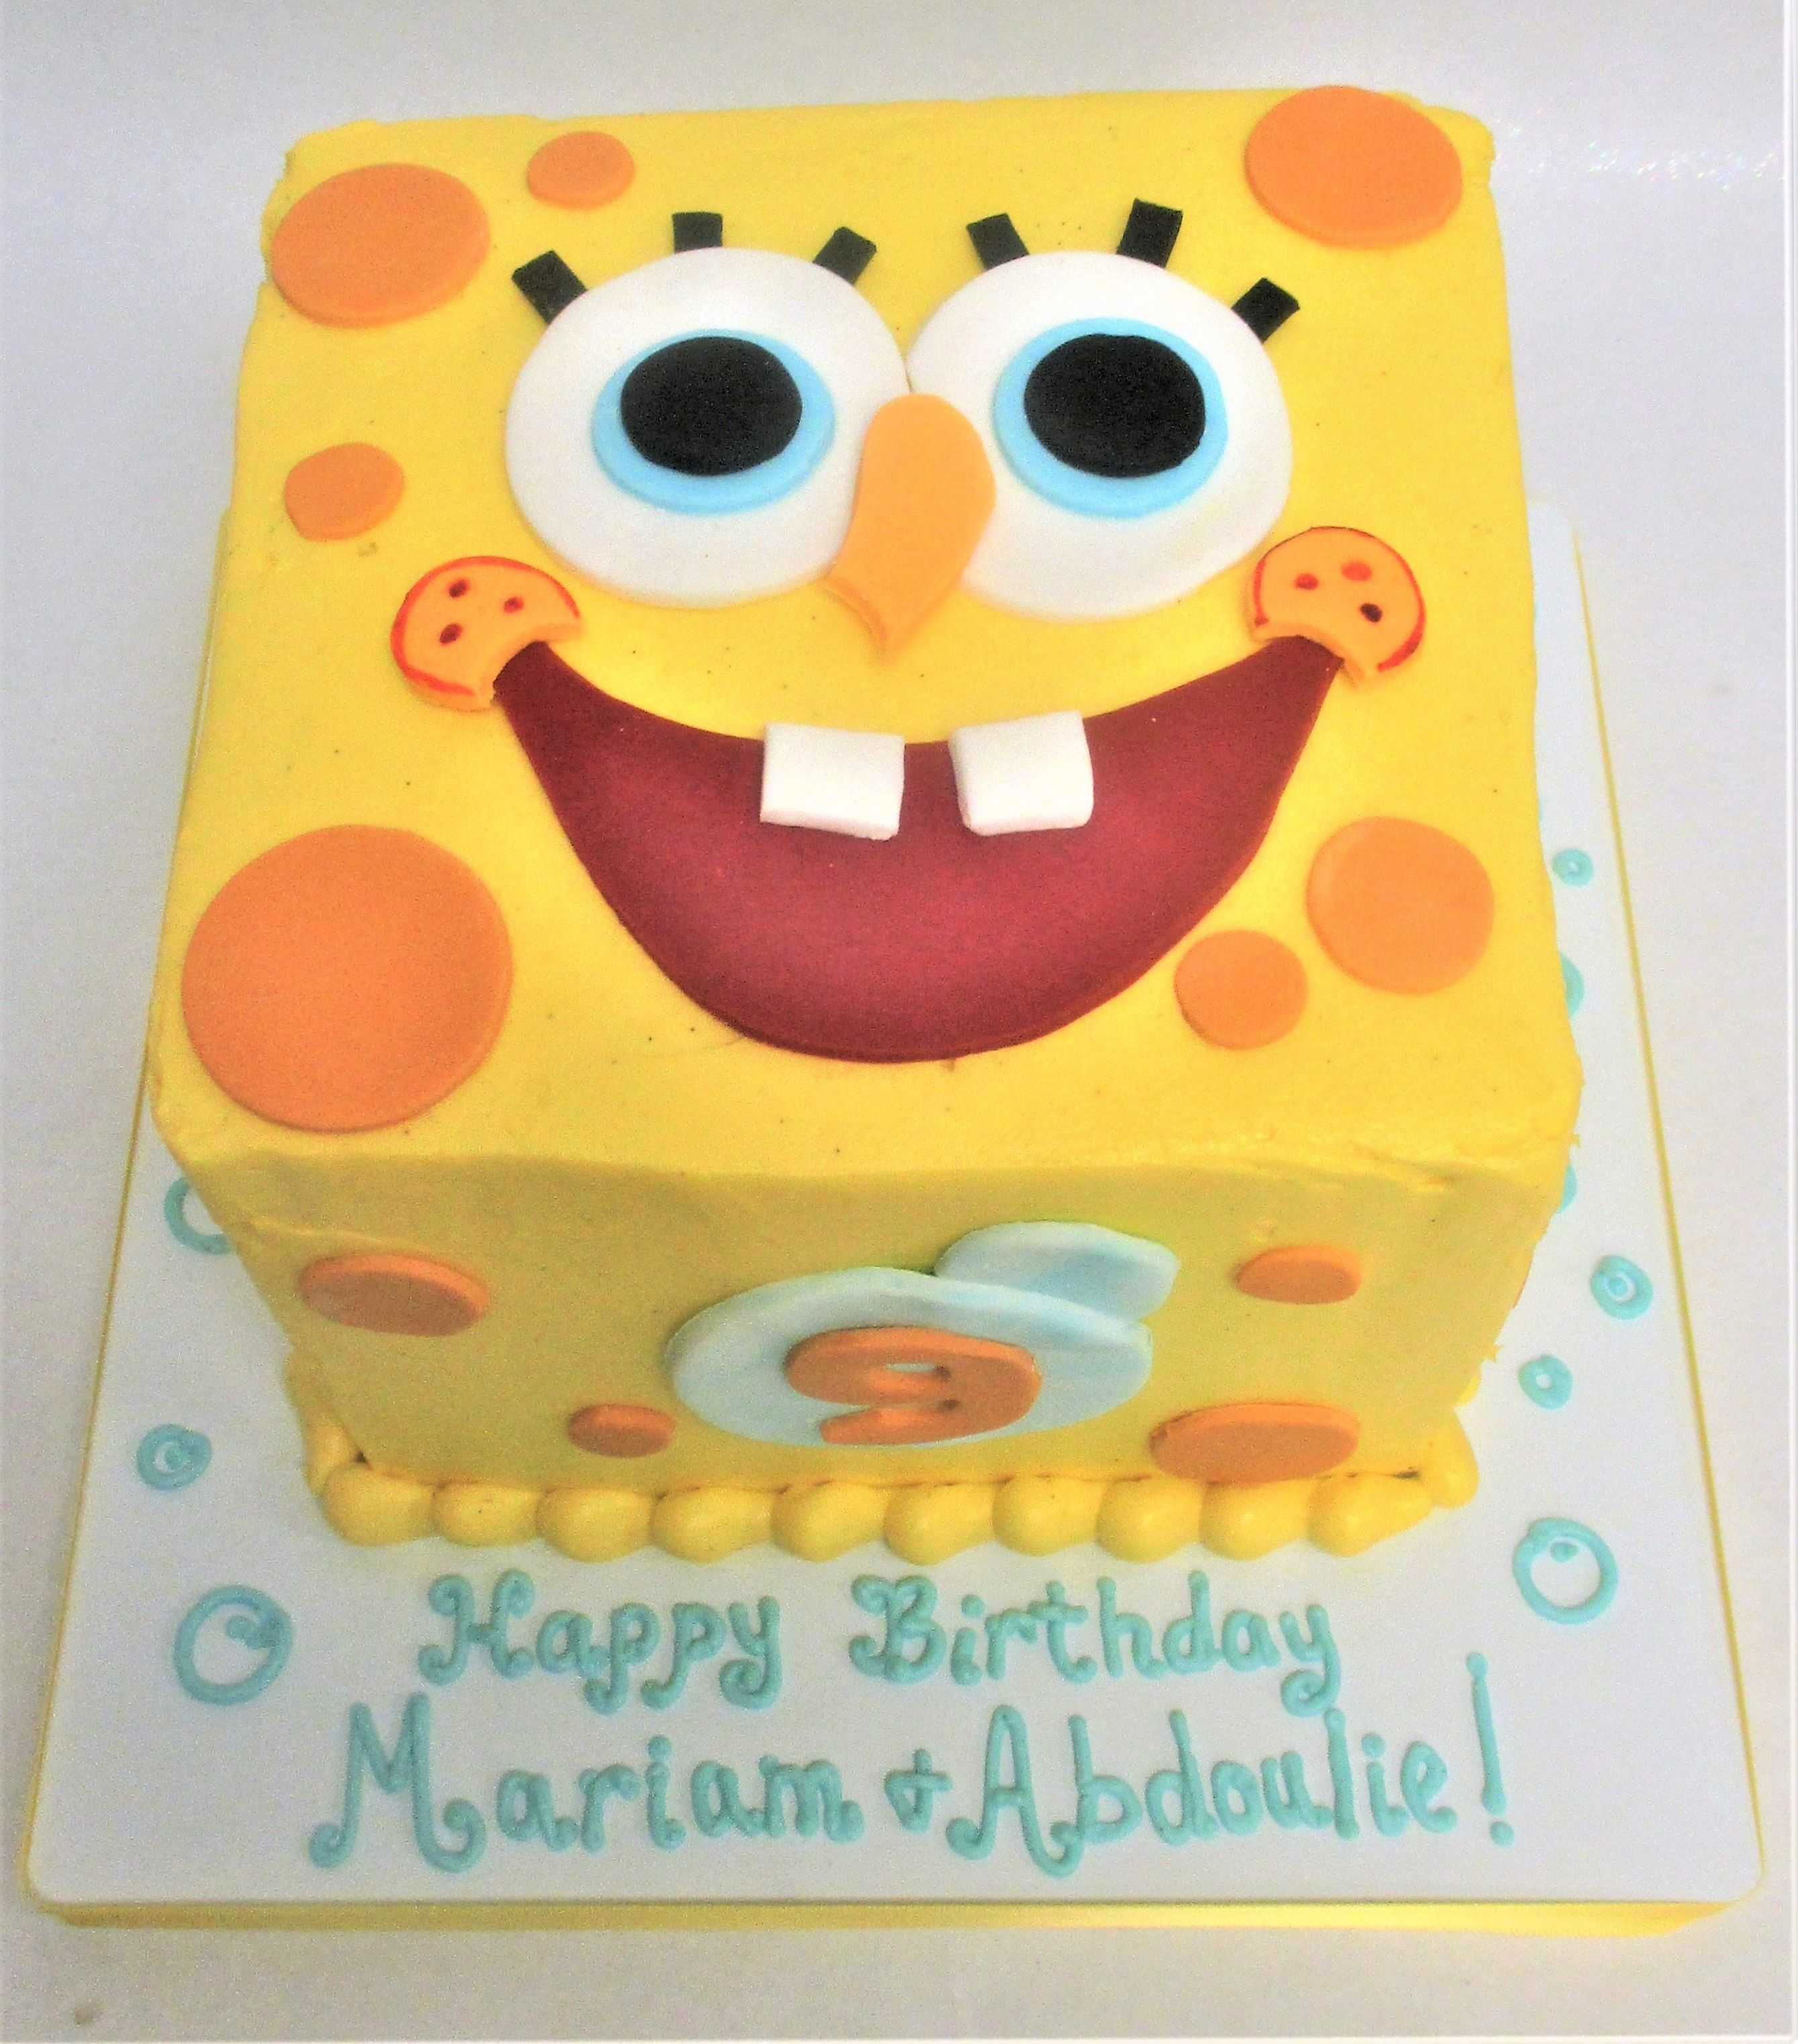 Square Spongebob Squarepants Birthday Cake by Flavor Cupcakery